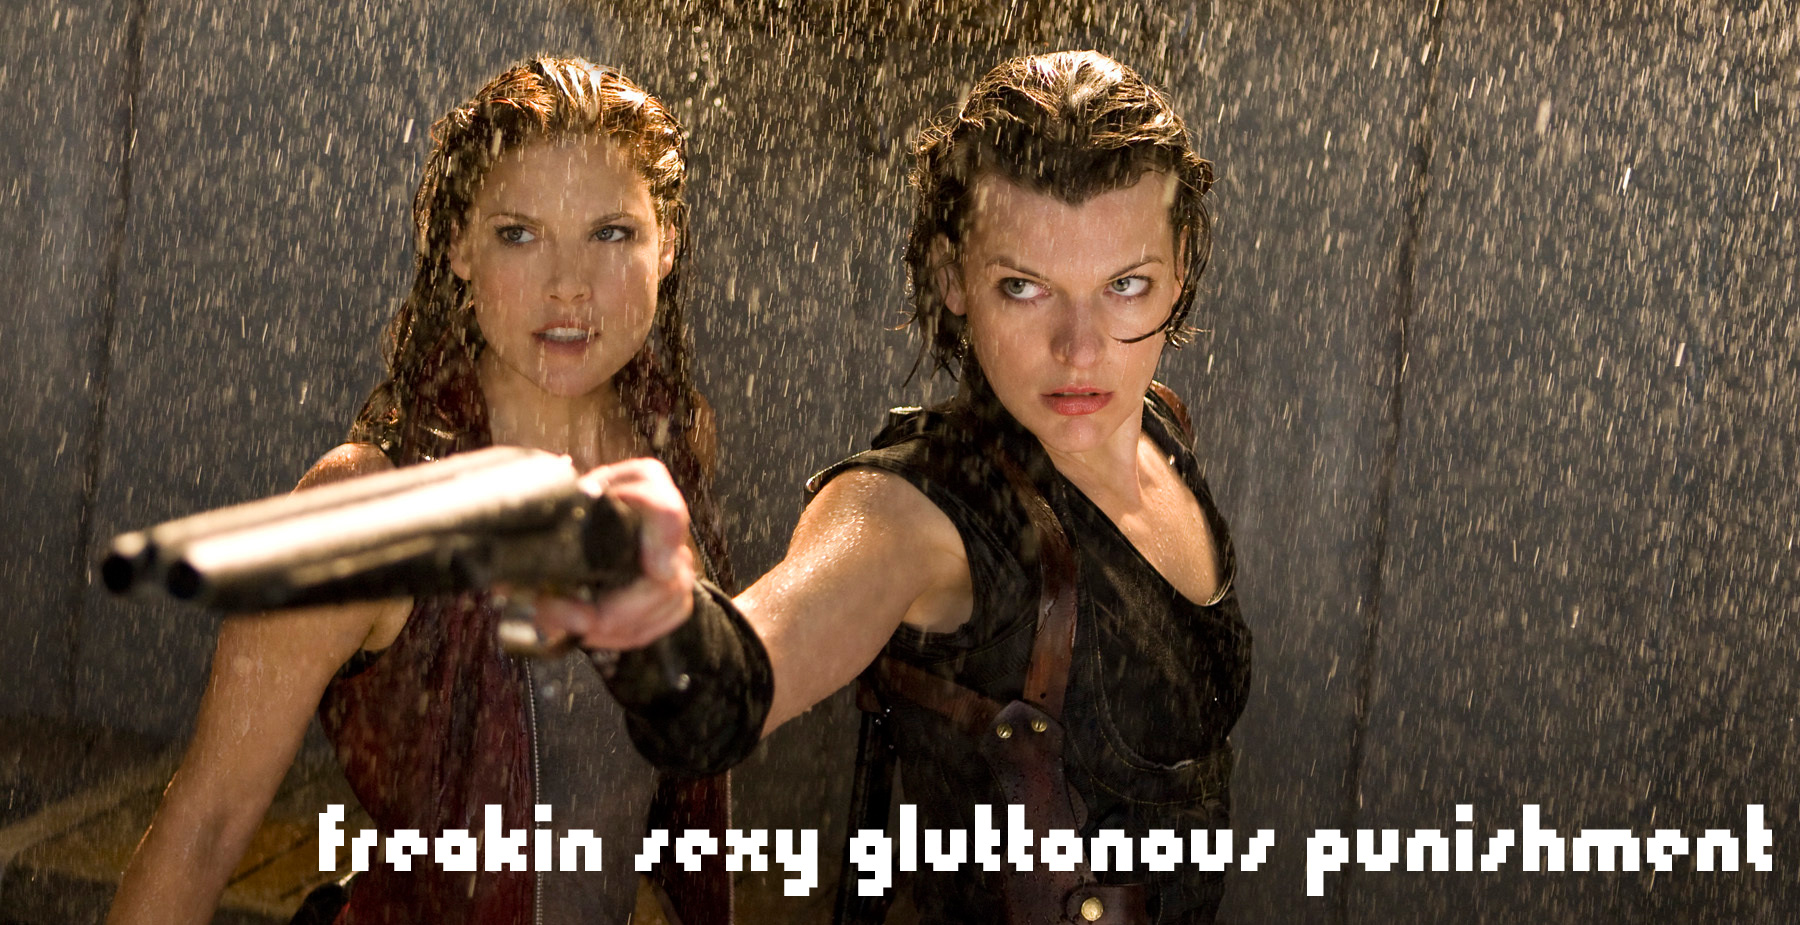 resident-evil-afterlife-2010-upcoming-movies-11375269-1800-1200.jpg